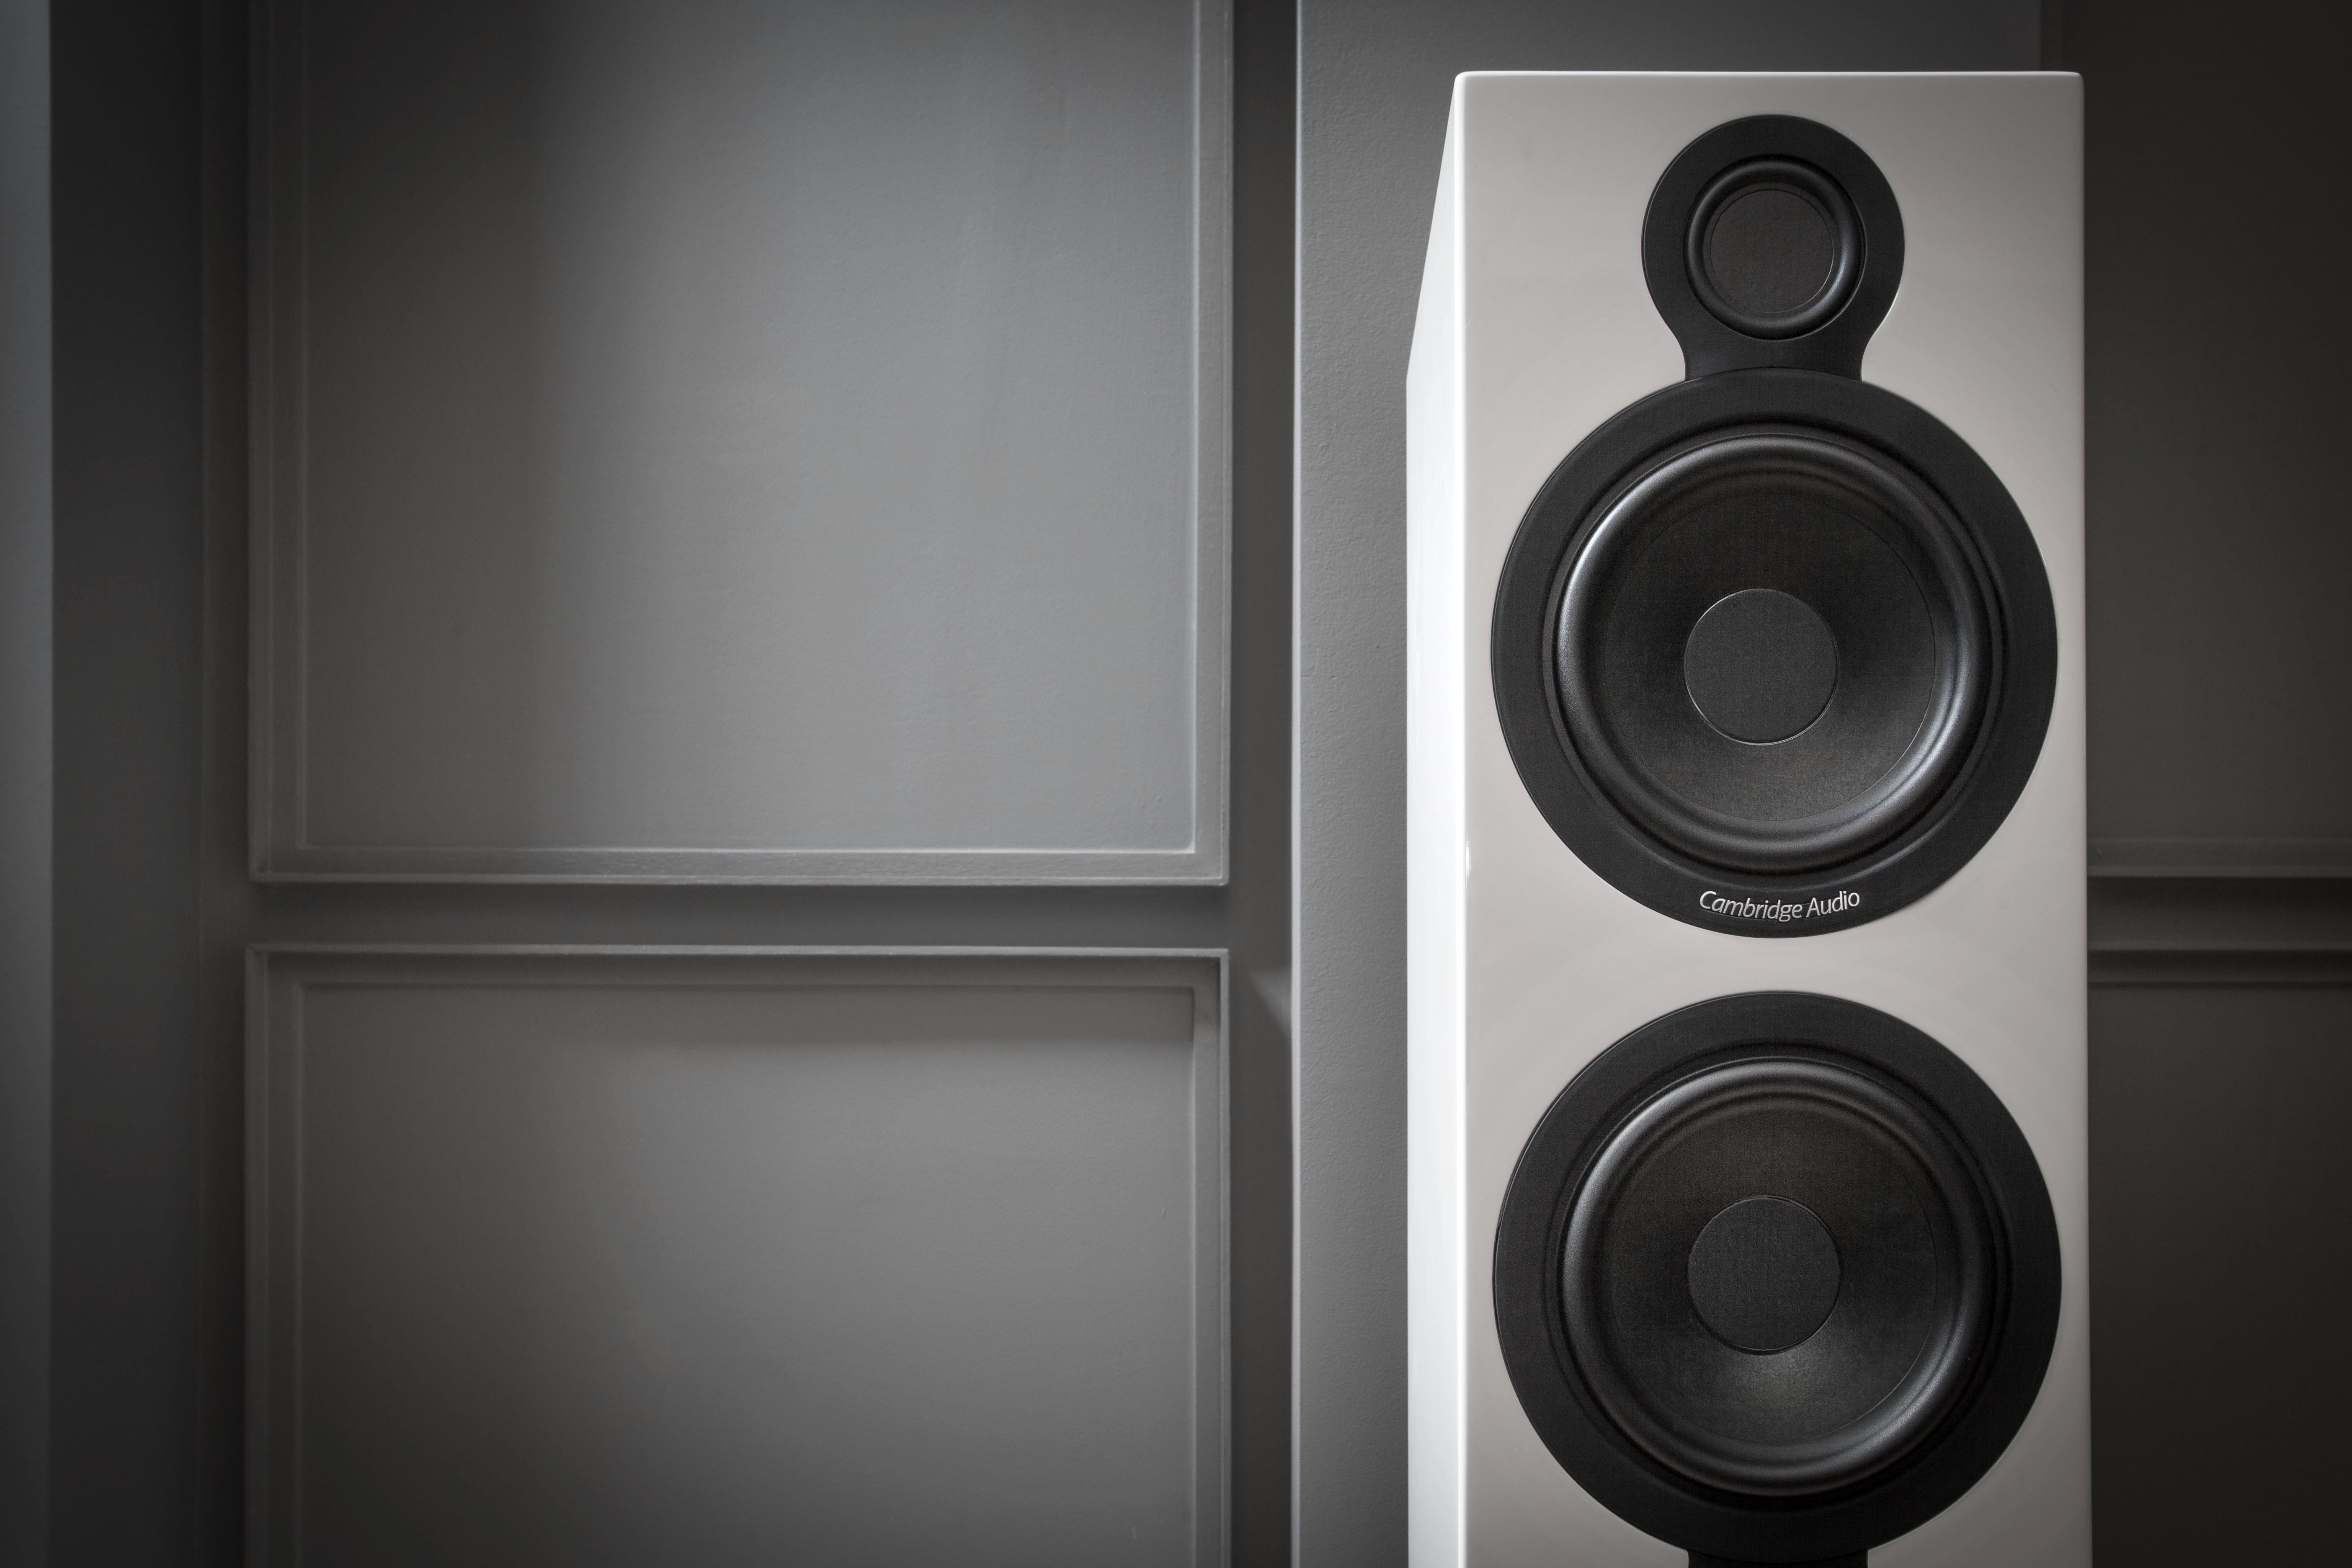 Nice Speakers For Room Test Your Speakers Like A Cambridge Audio Engineer Cambridge Audio